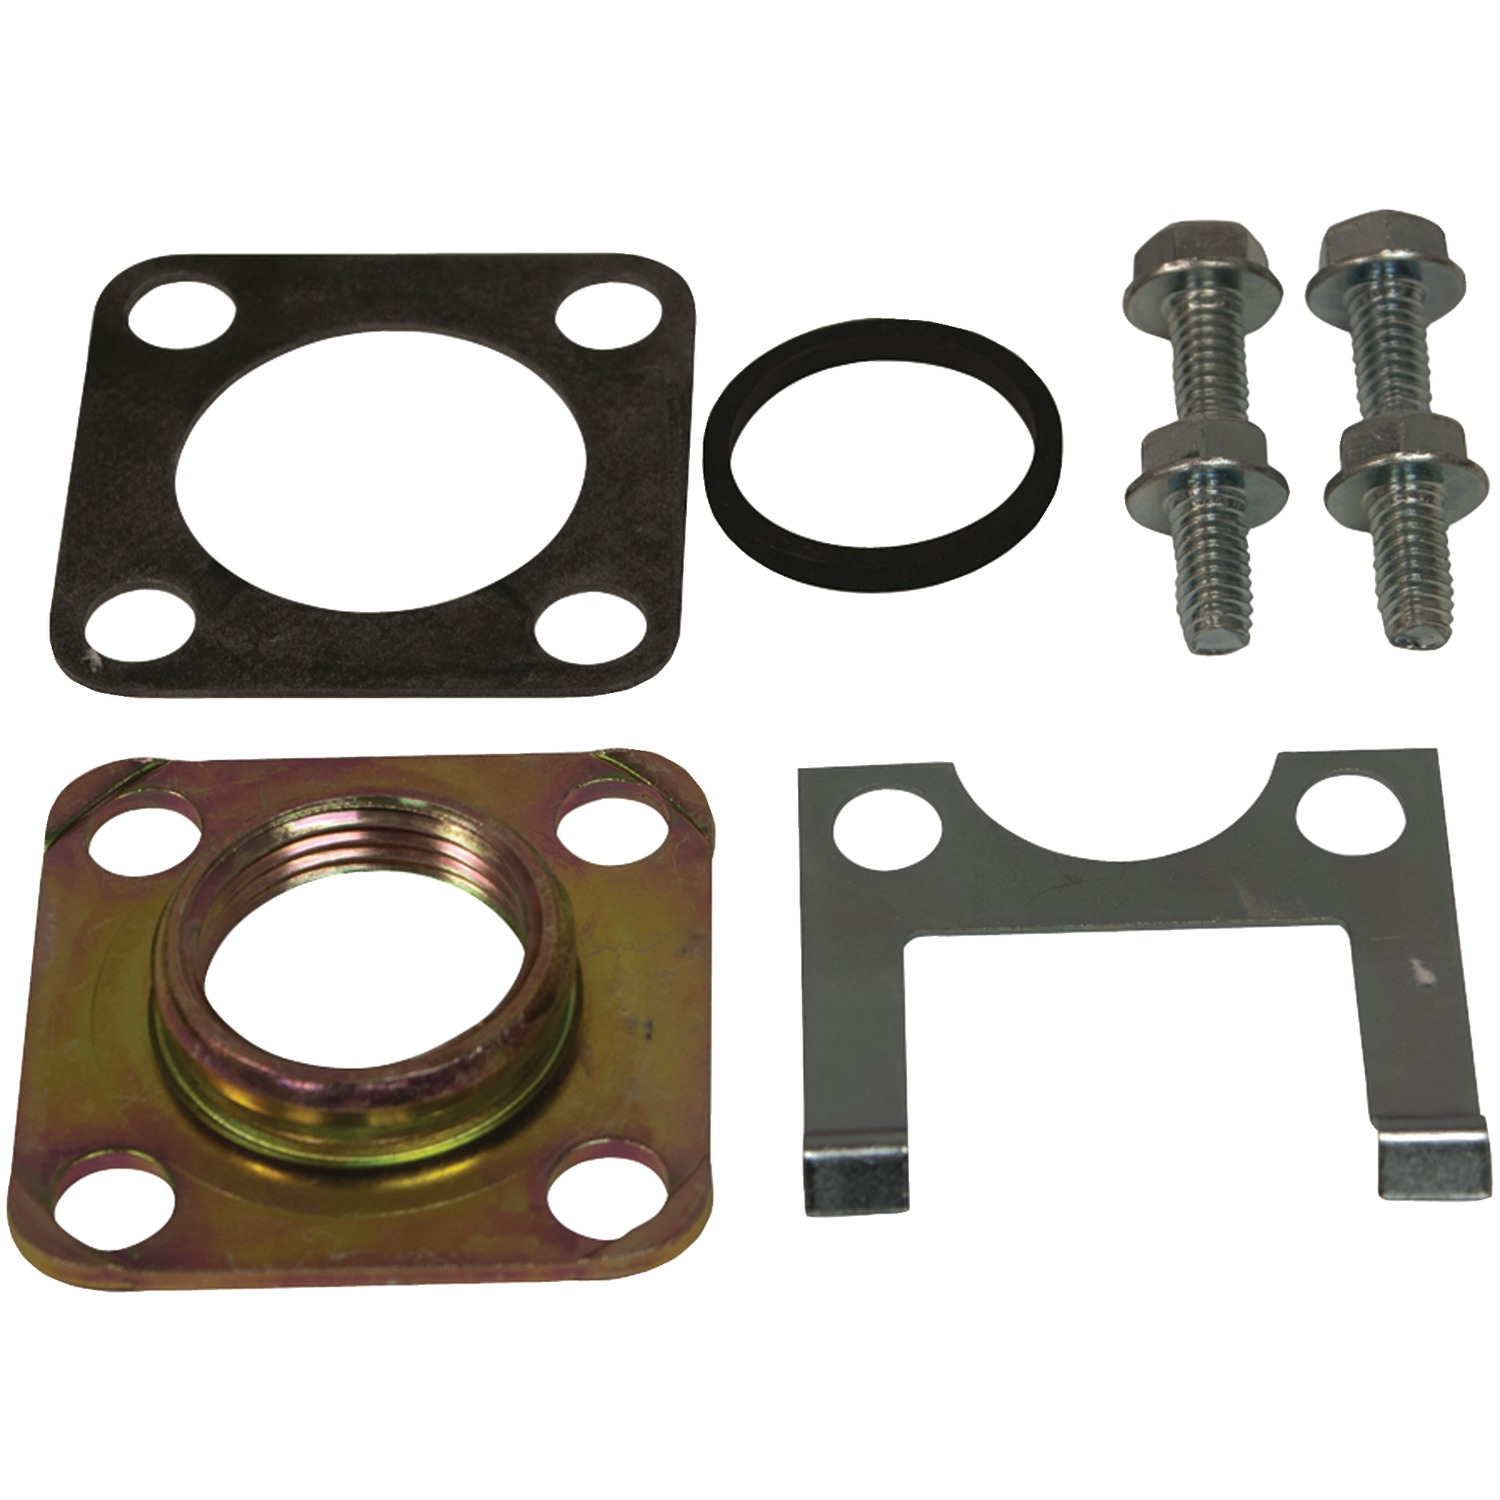 60049 Water Heater Element Adapter Kit